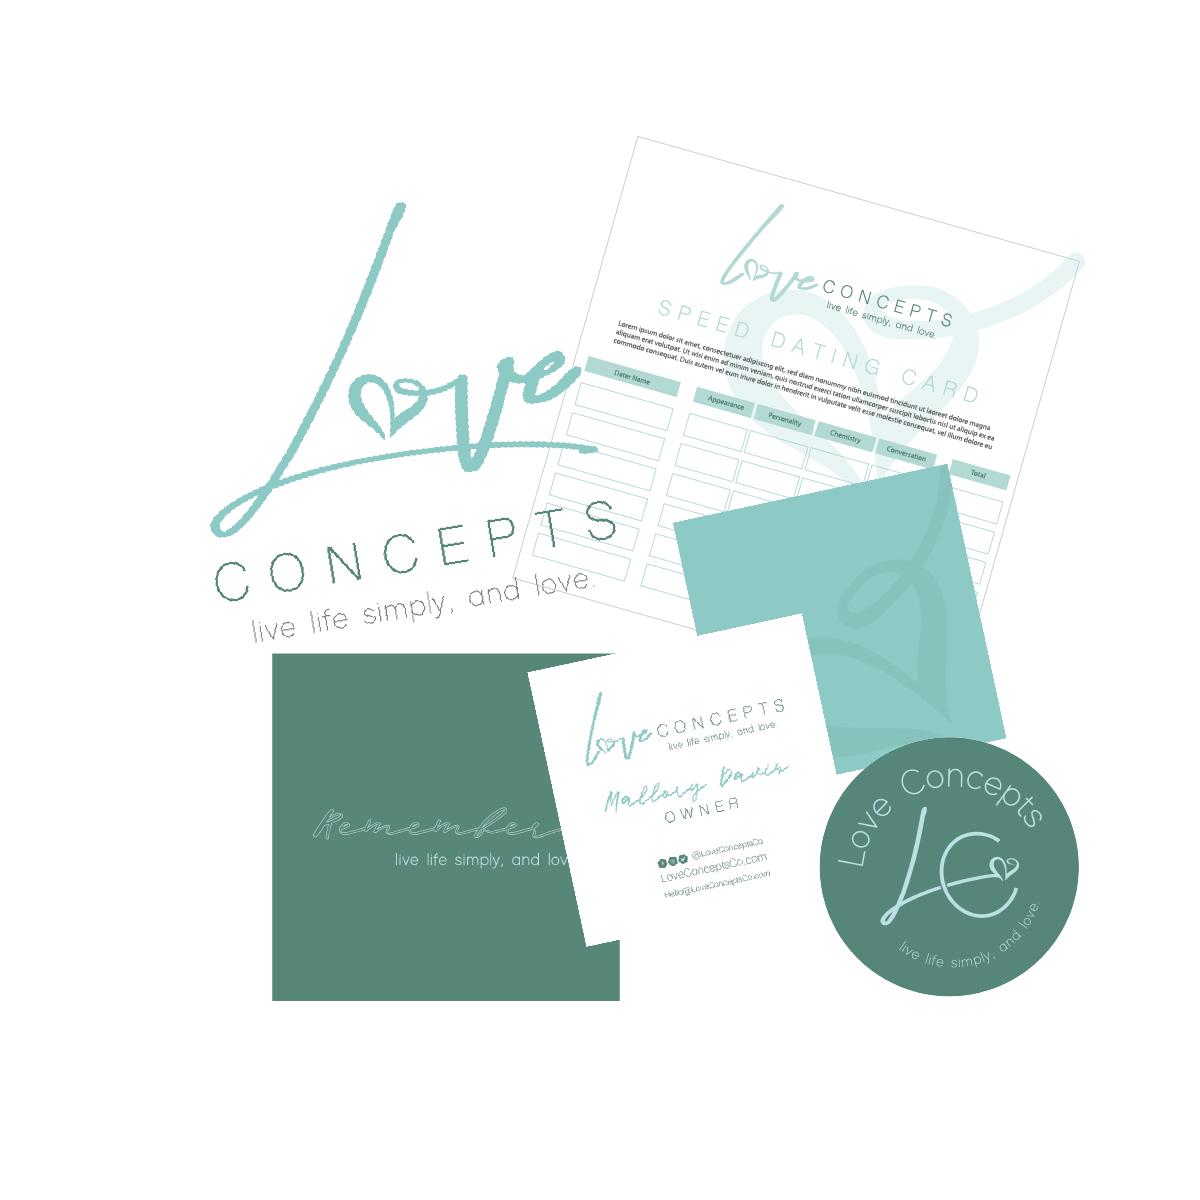 loveconcepts-pdc-01.png